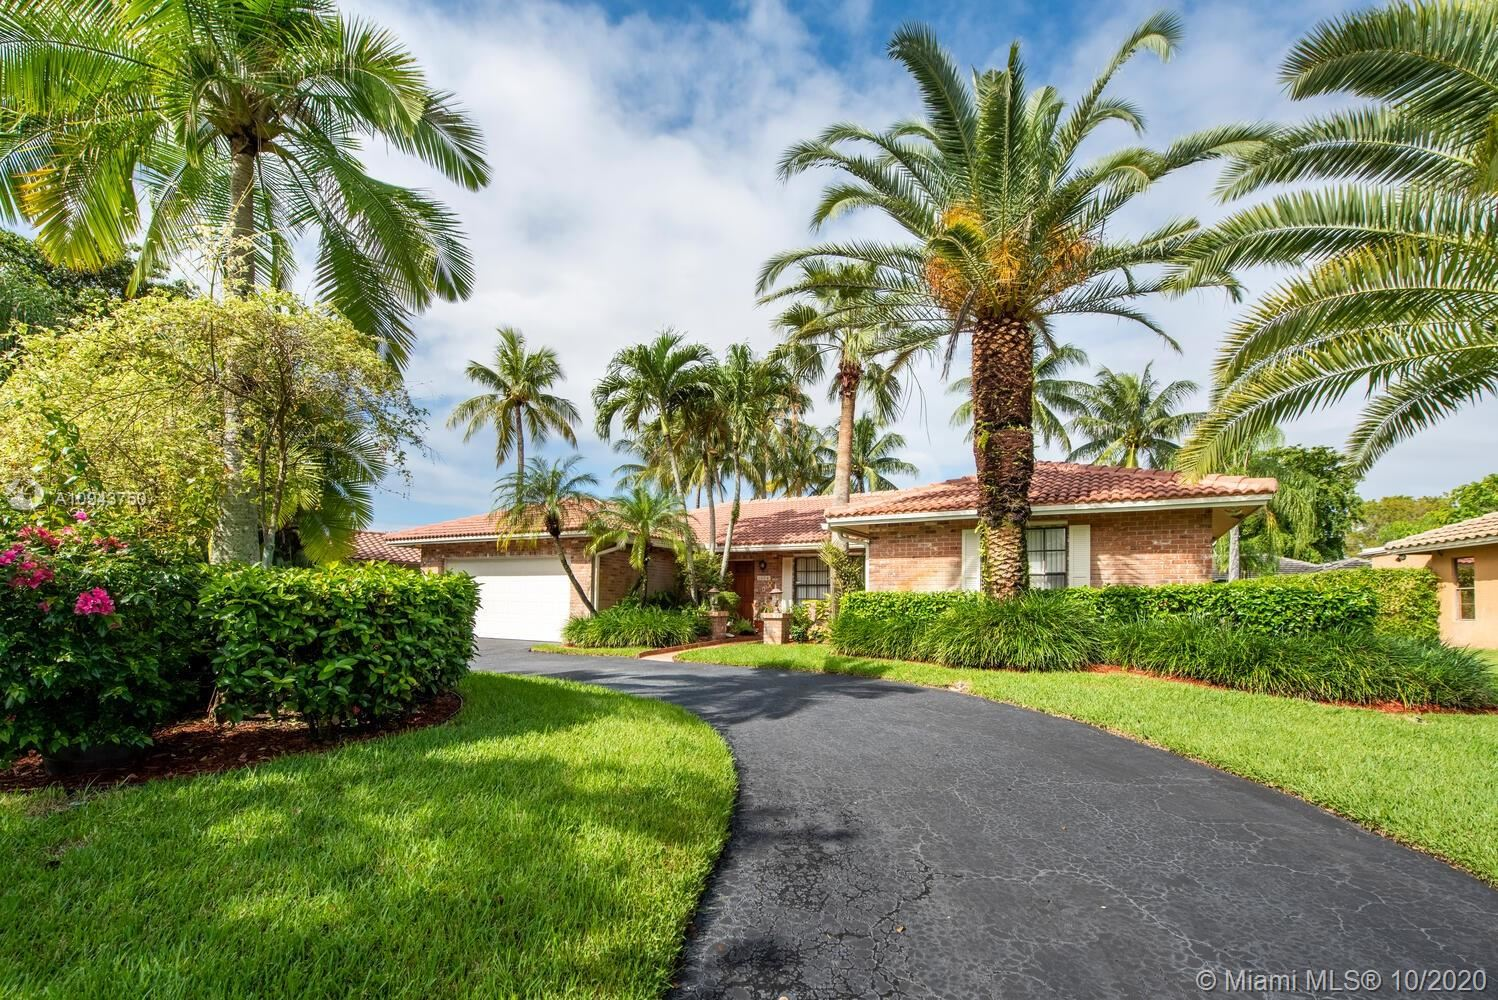 1204 NW 111th Way, Coral Springs, FL 33071 - #: A10943750